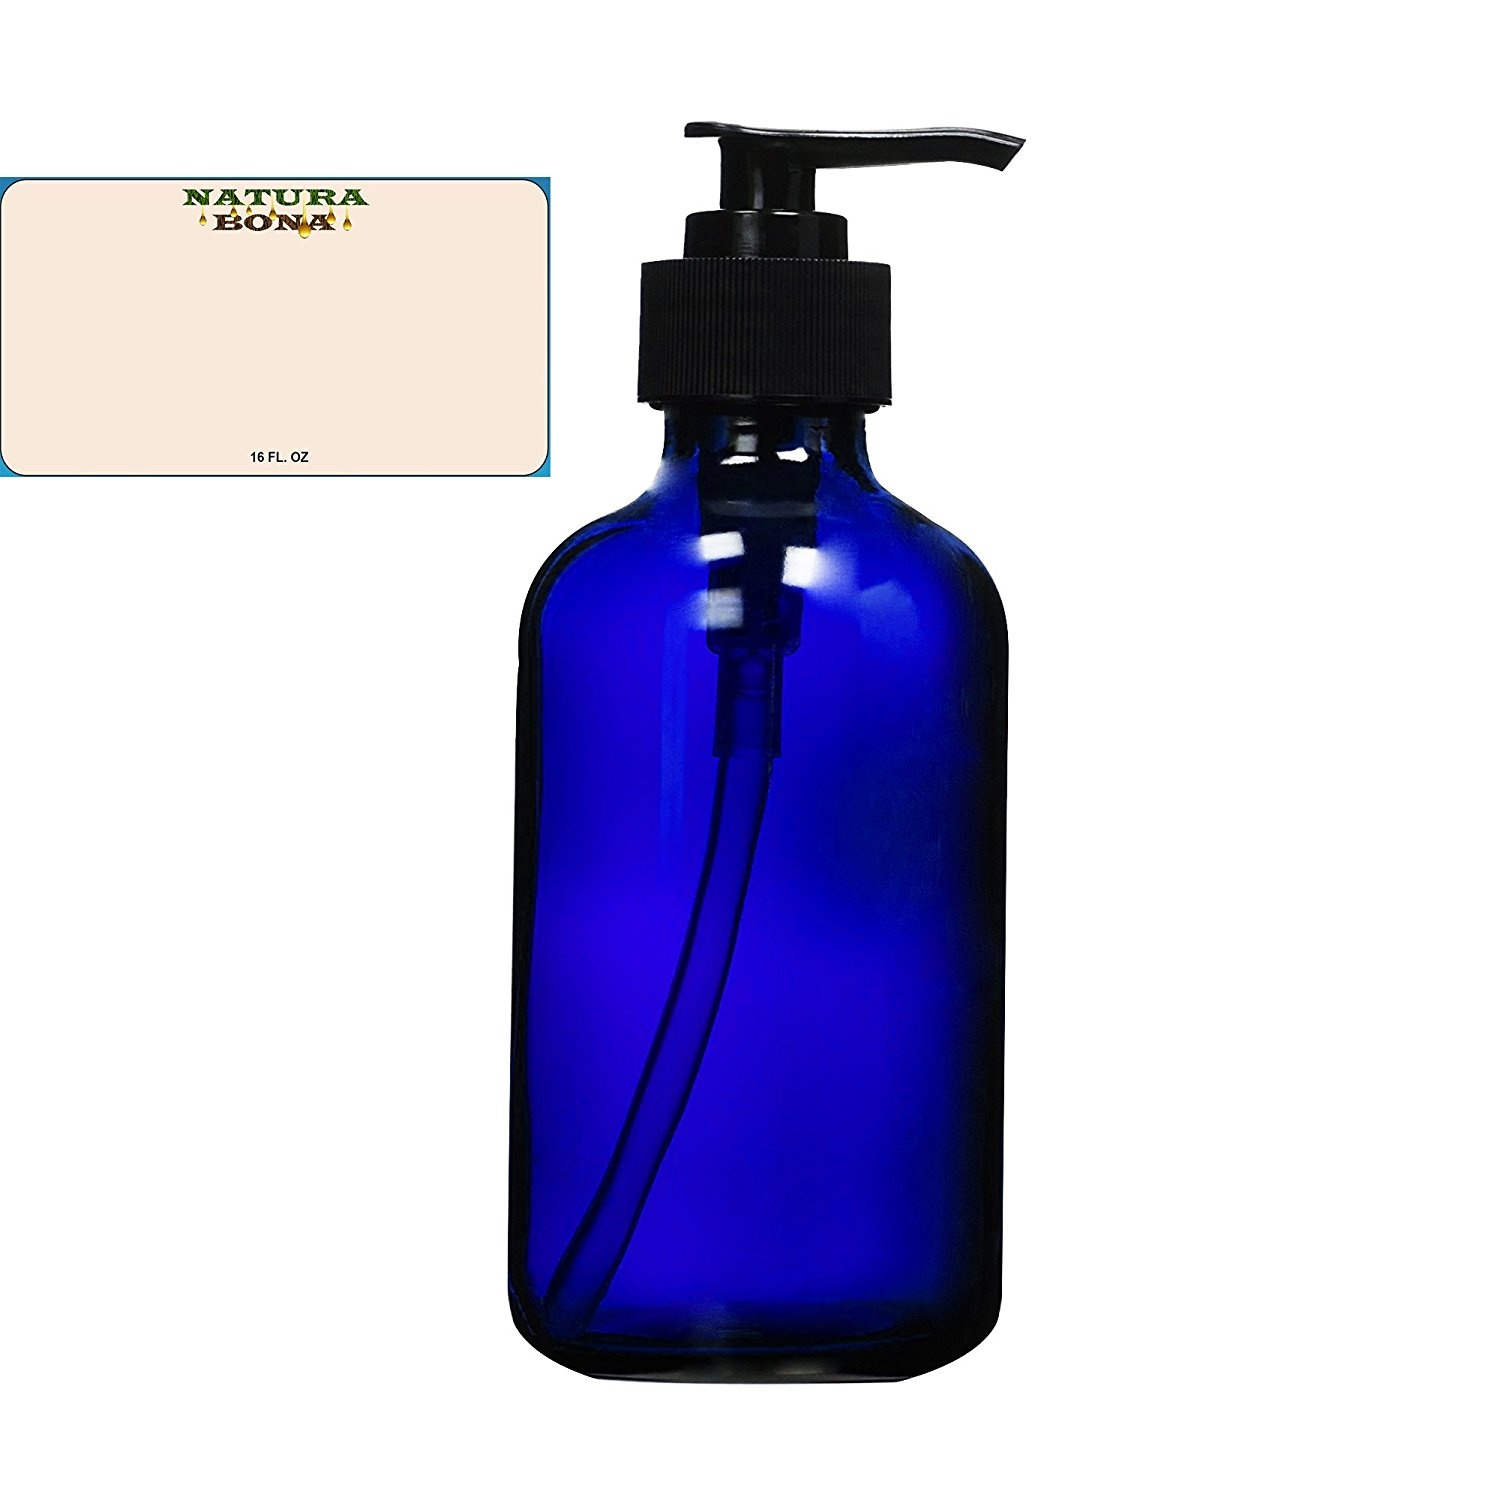 cf106aa9c92d Natura Bona Professional Glass 470ml Boston Round Bottle with BPA Free  Saddle Dispensing Pump & Label. Perfect for DIY Lotions, Soaps, Massage and  ...